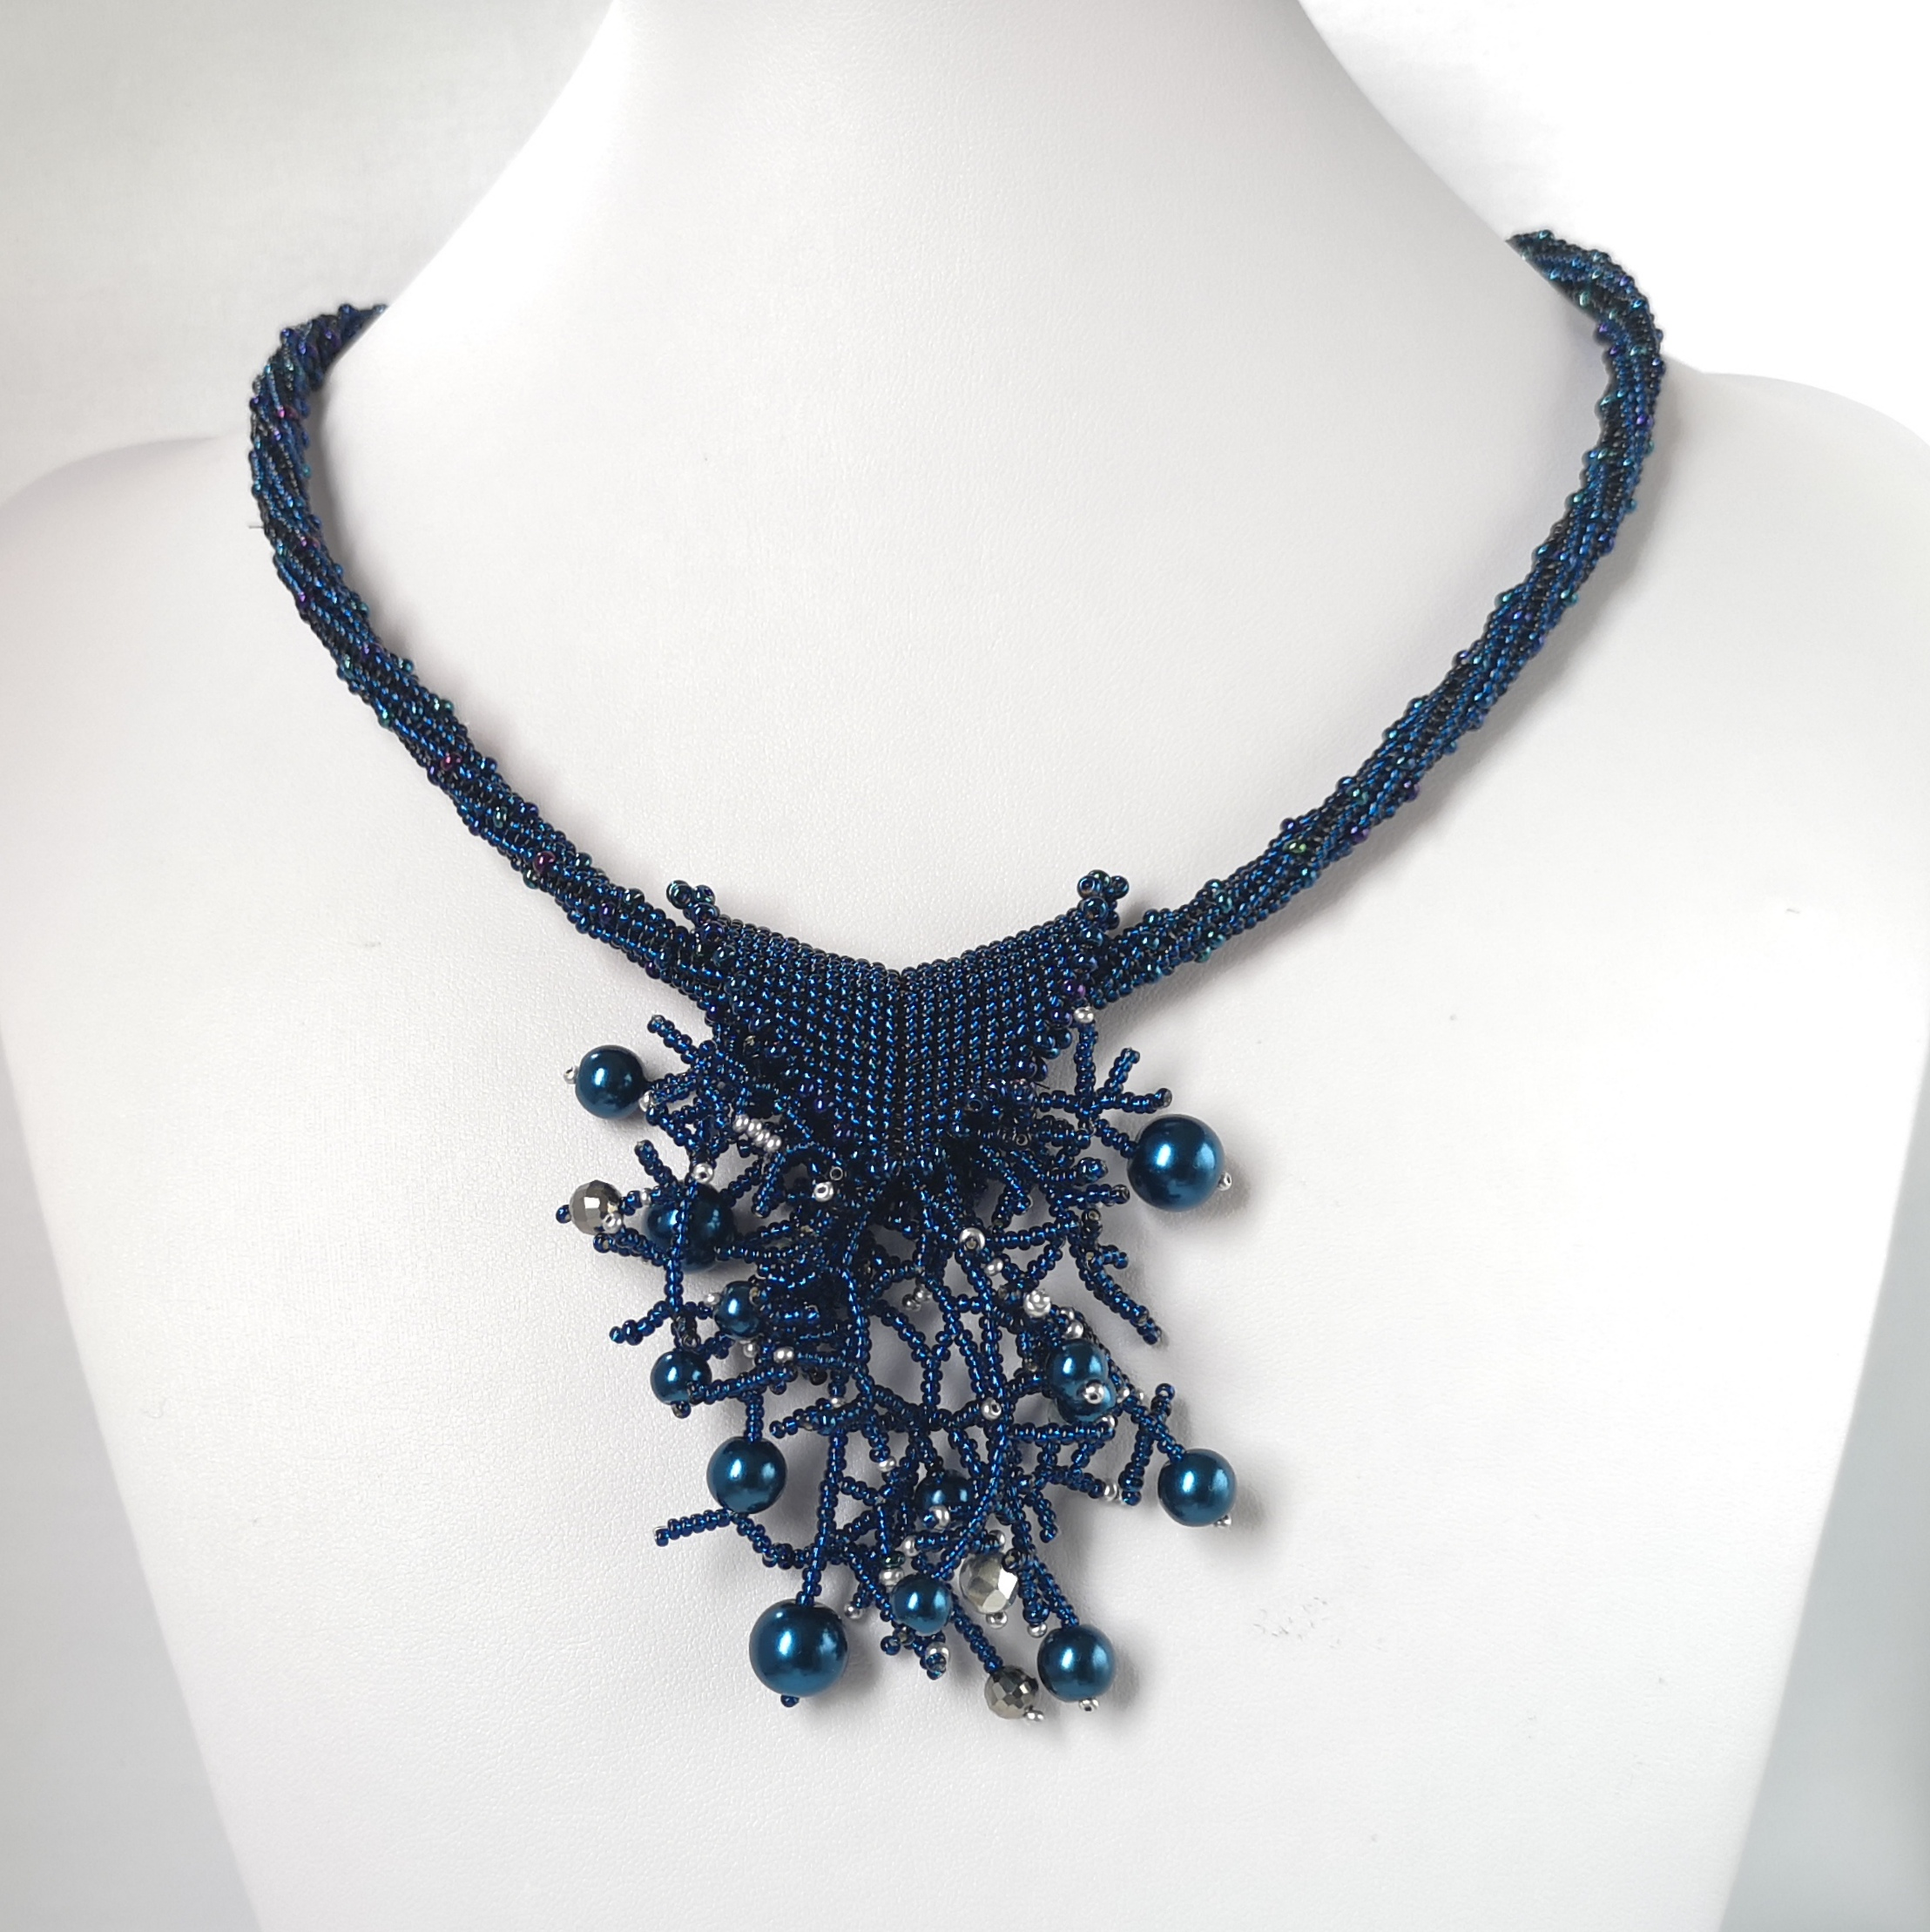 seed beads necklace (1)